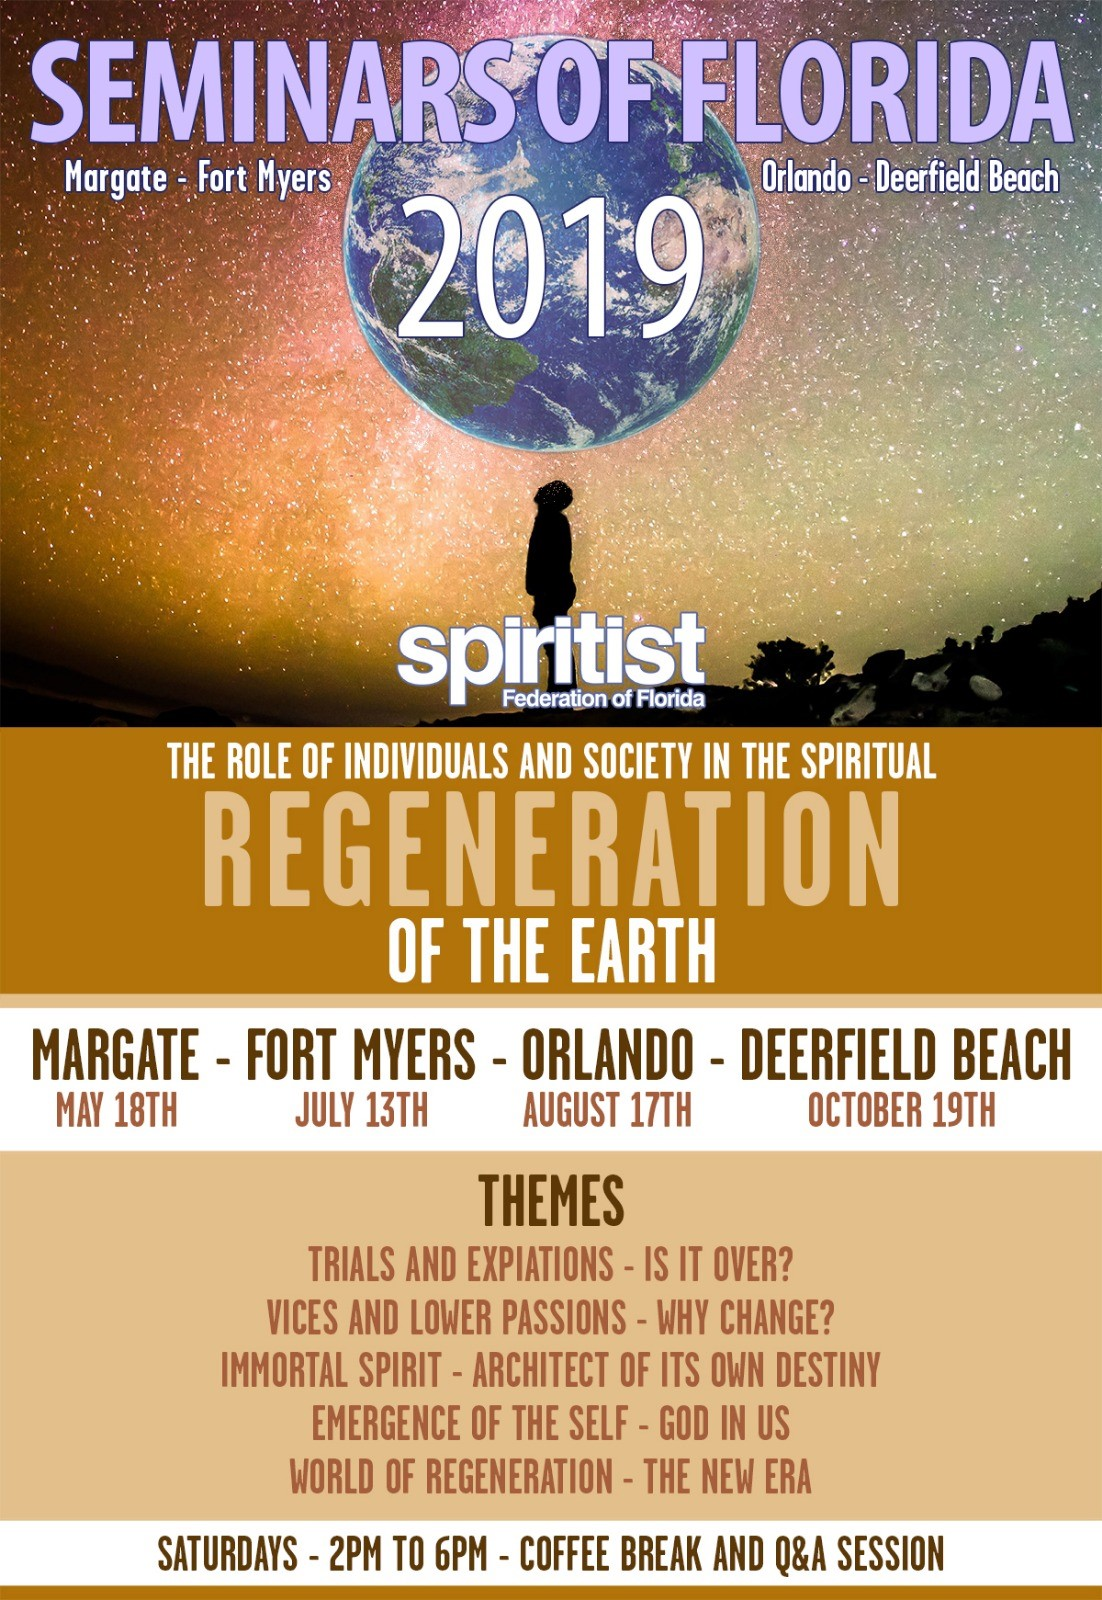 FLORIDA SPIRITIST SEMINARS OF 2019. Main topic: The Role of Individuals and Society in the Spiritual REGENERATION OF THE EARTH wtih David Walkden, Tereza Ayres, Karina Costa, Marcelo Netto and Claudia Mellado